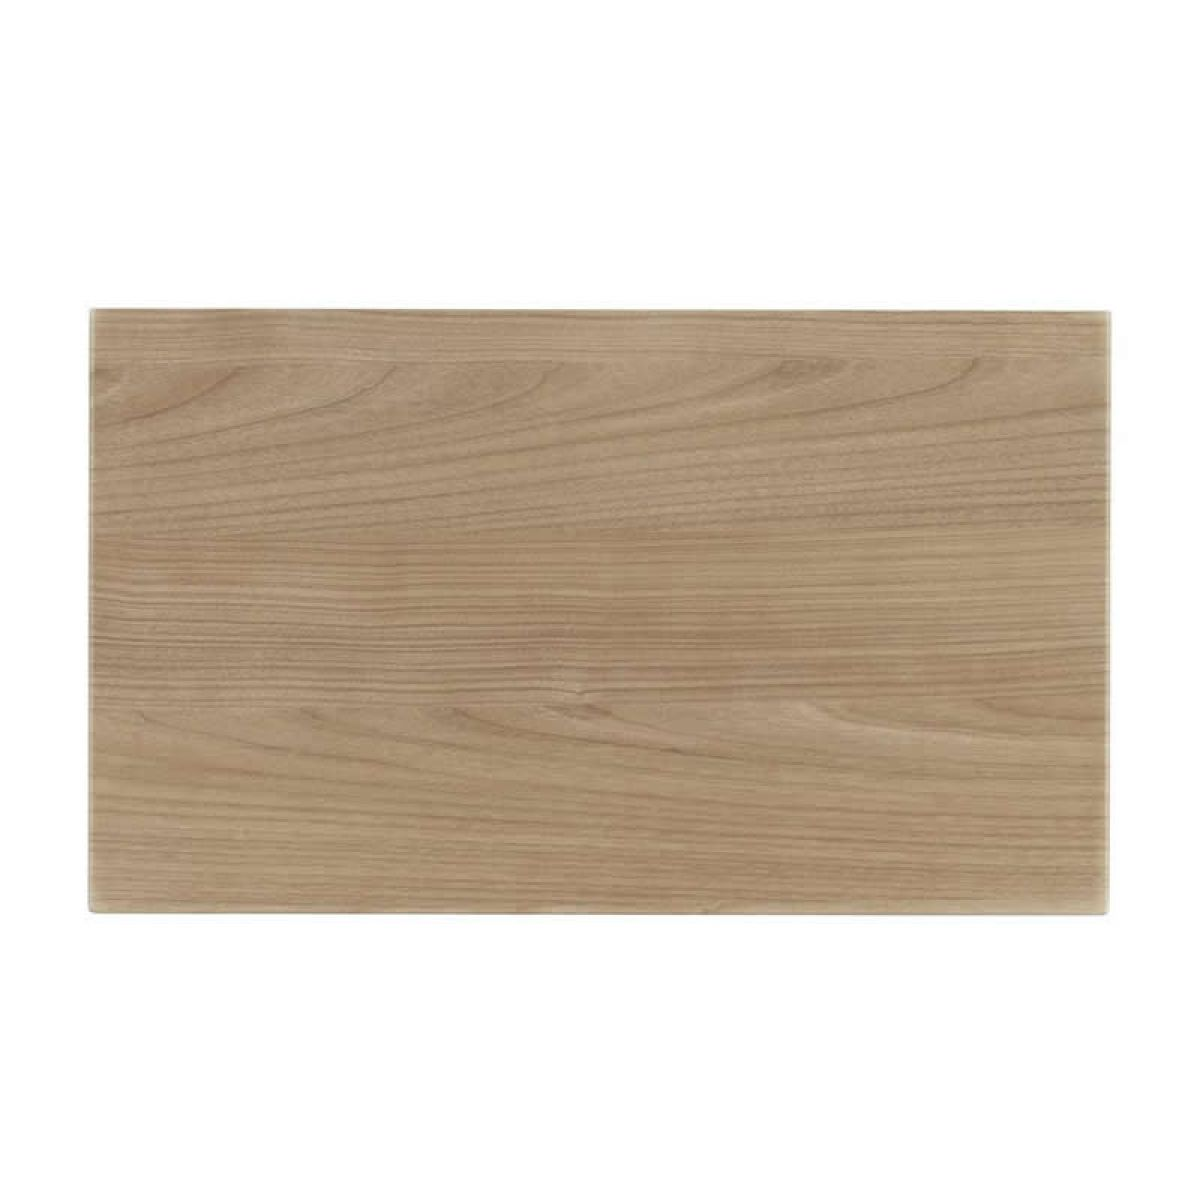 Amazing This Solid Oak Worktop Is Ideal For Topping Our Imandra Bathroom Furniture Range With, For Additional Surfaces On Top Of Your Cabinets To Store Your Possessions Supplied In 18m Lengths It Can Be Cut To Size Easily To Fit Your Space Easily